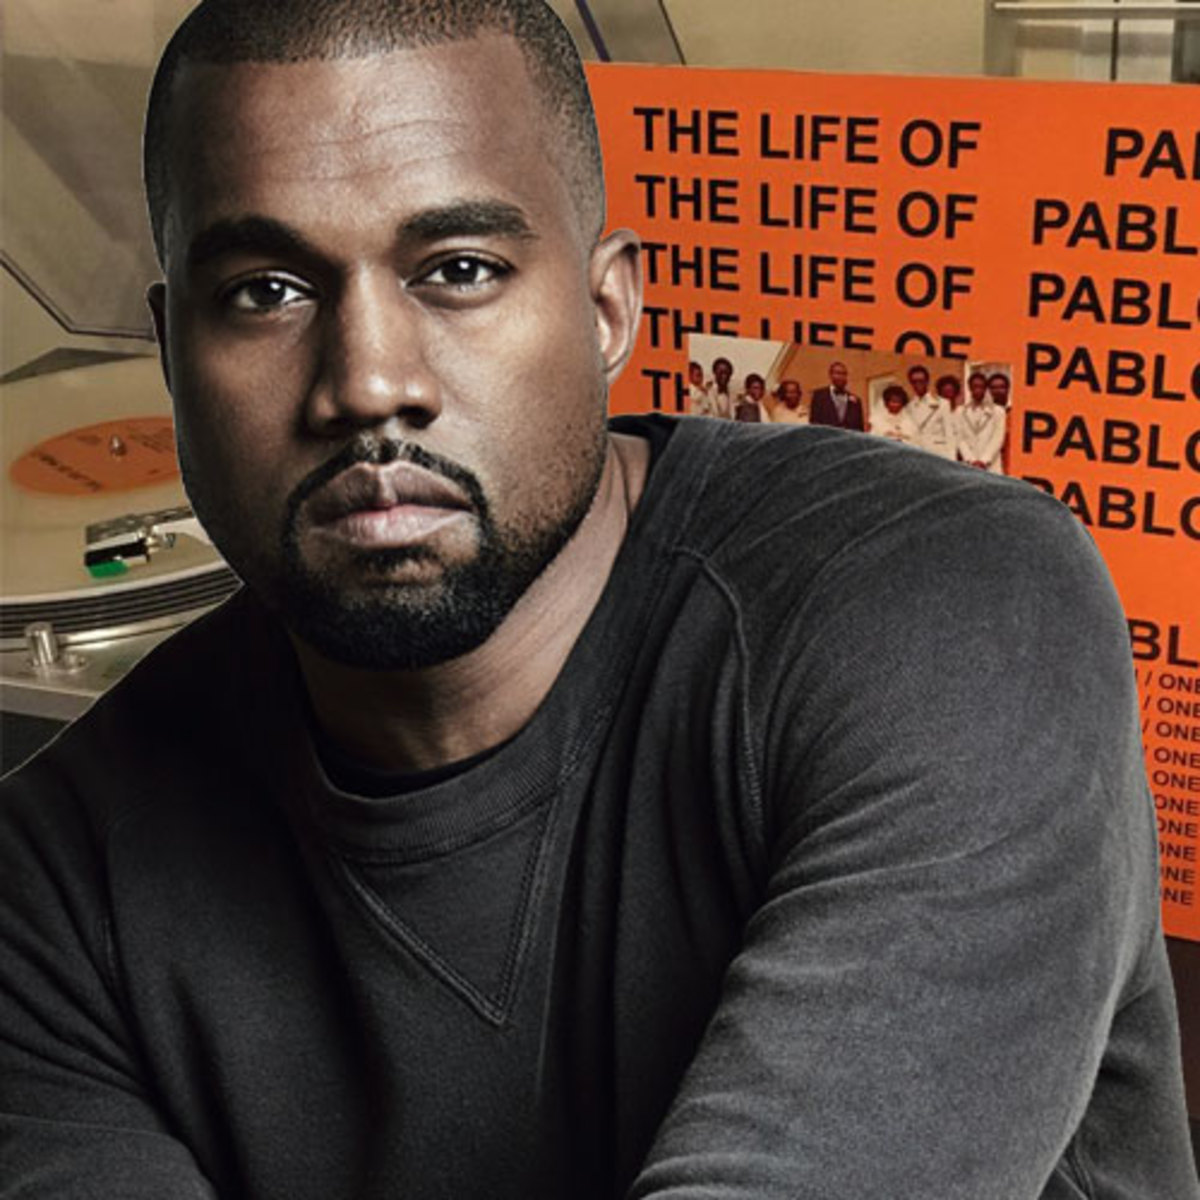 kanye-tlop-charted-at-number-1.jpg